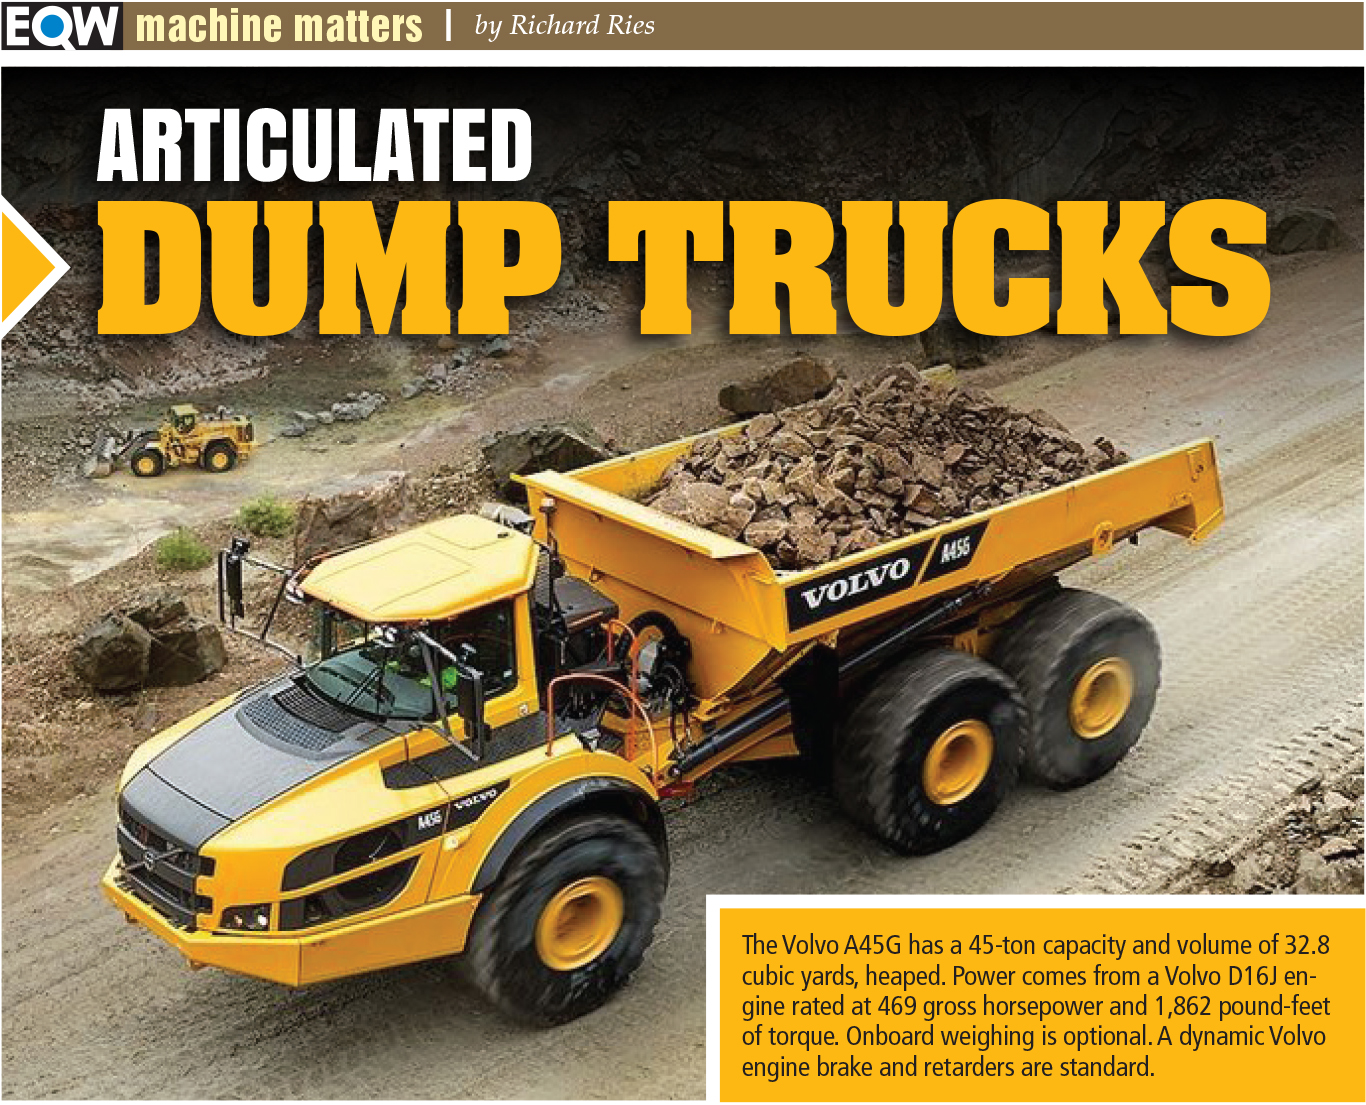 In High Demand Popular Articulated Dump Truck Models Seeing Steady Improvements Equipment World